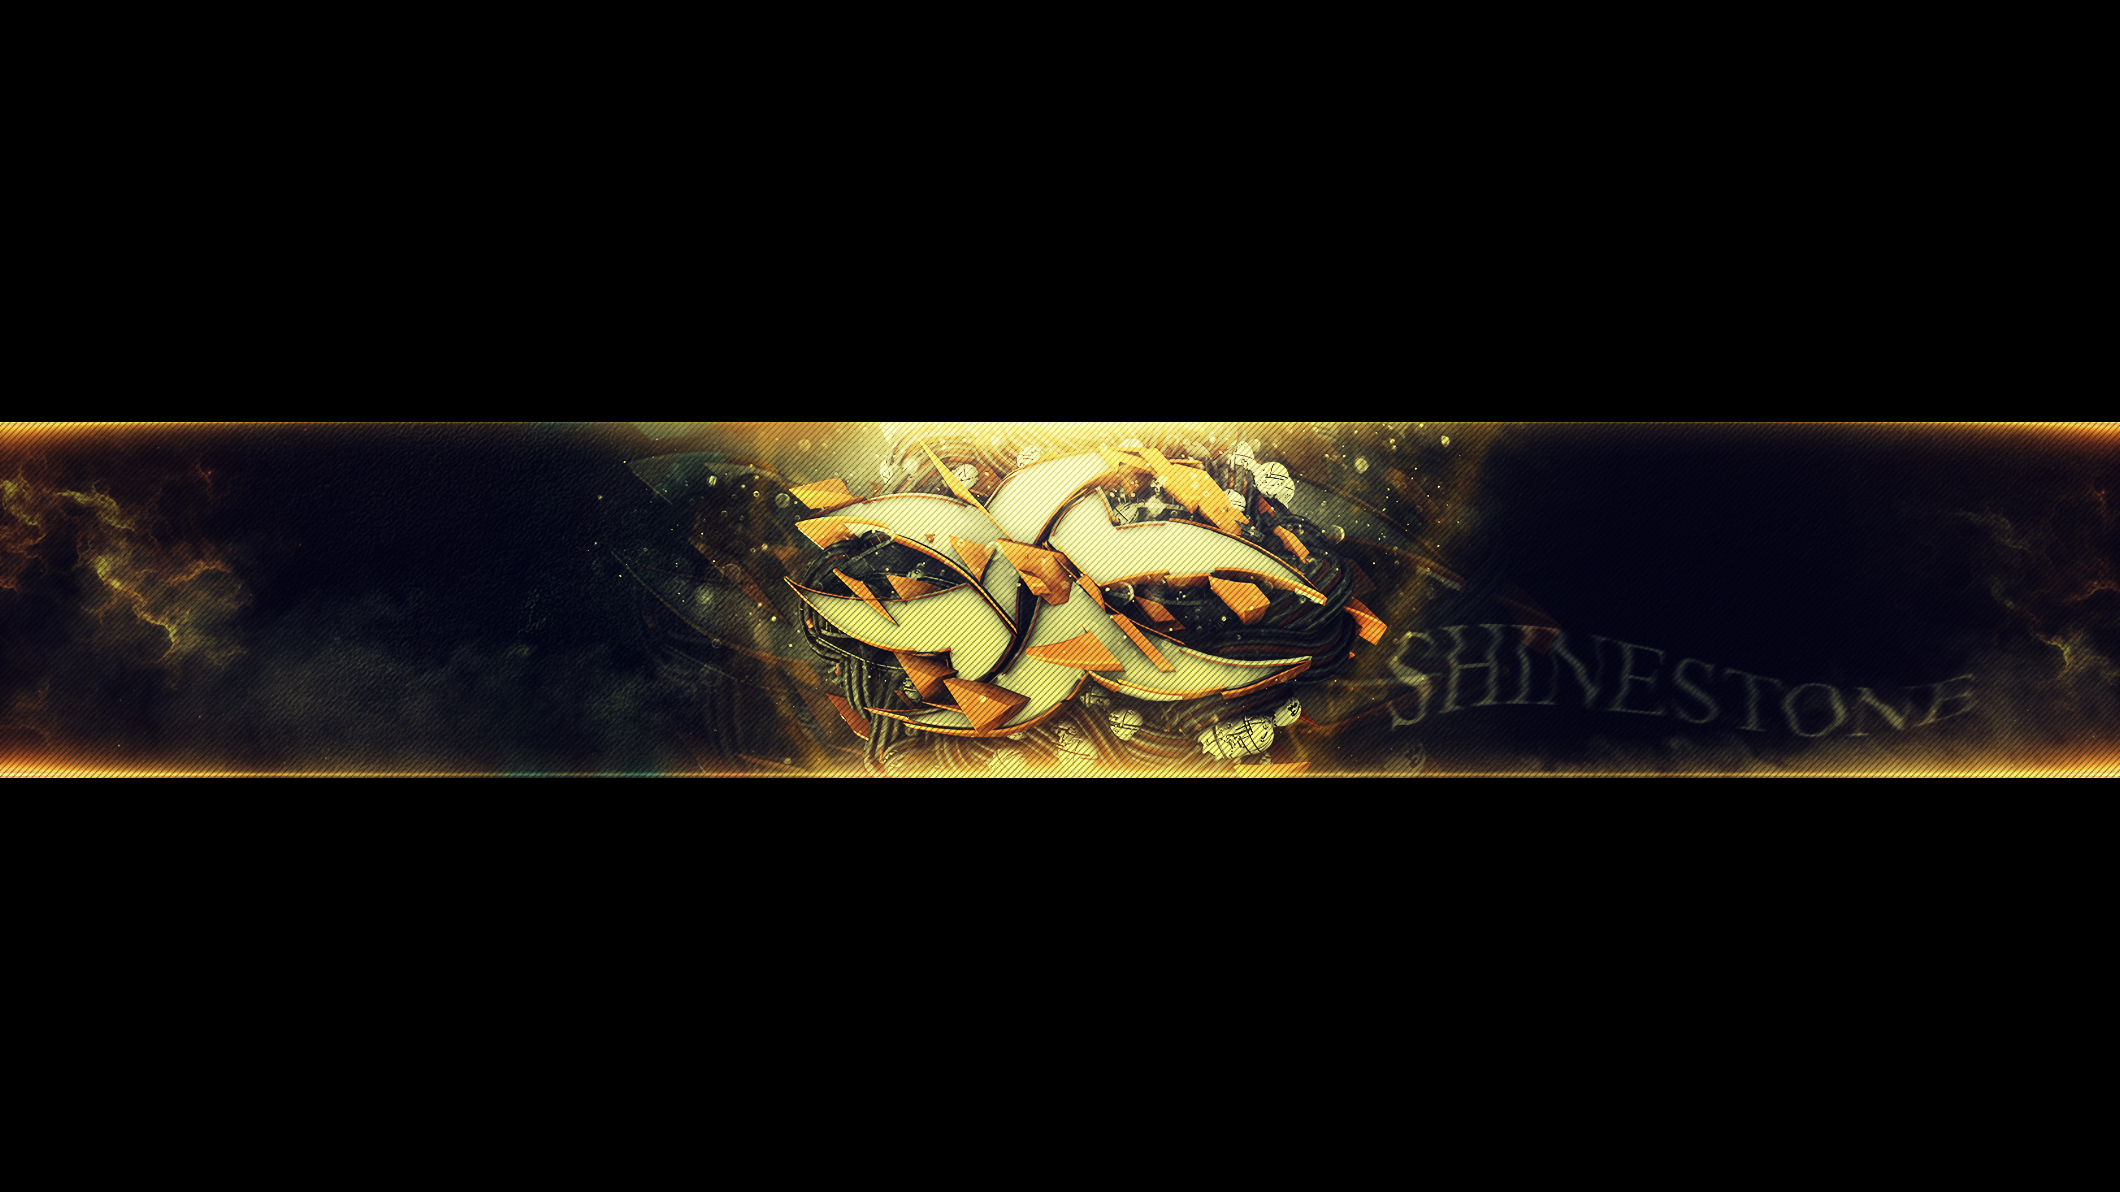 awesome youtube banners - anuvrat.info